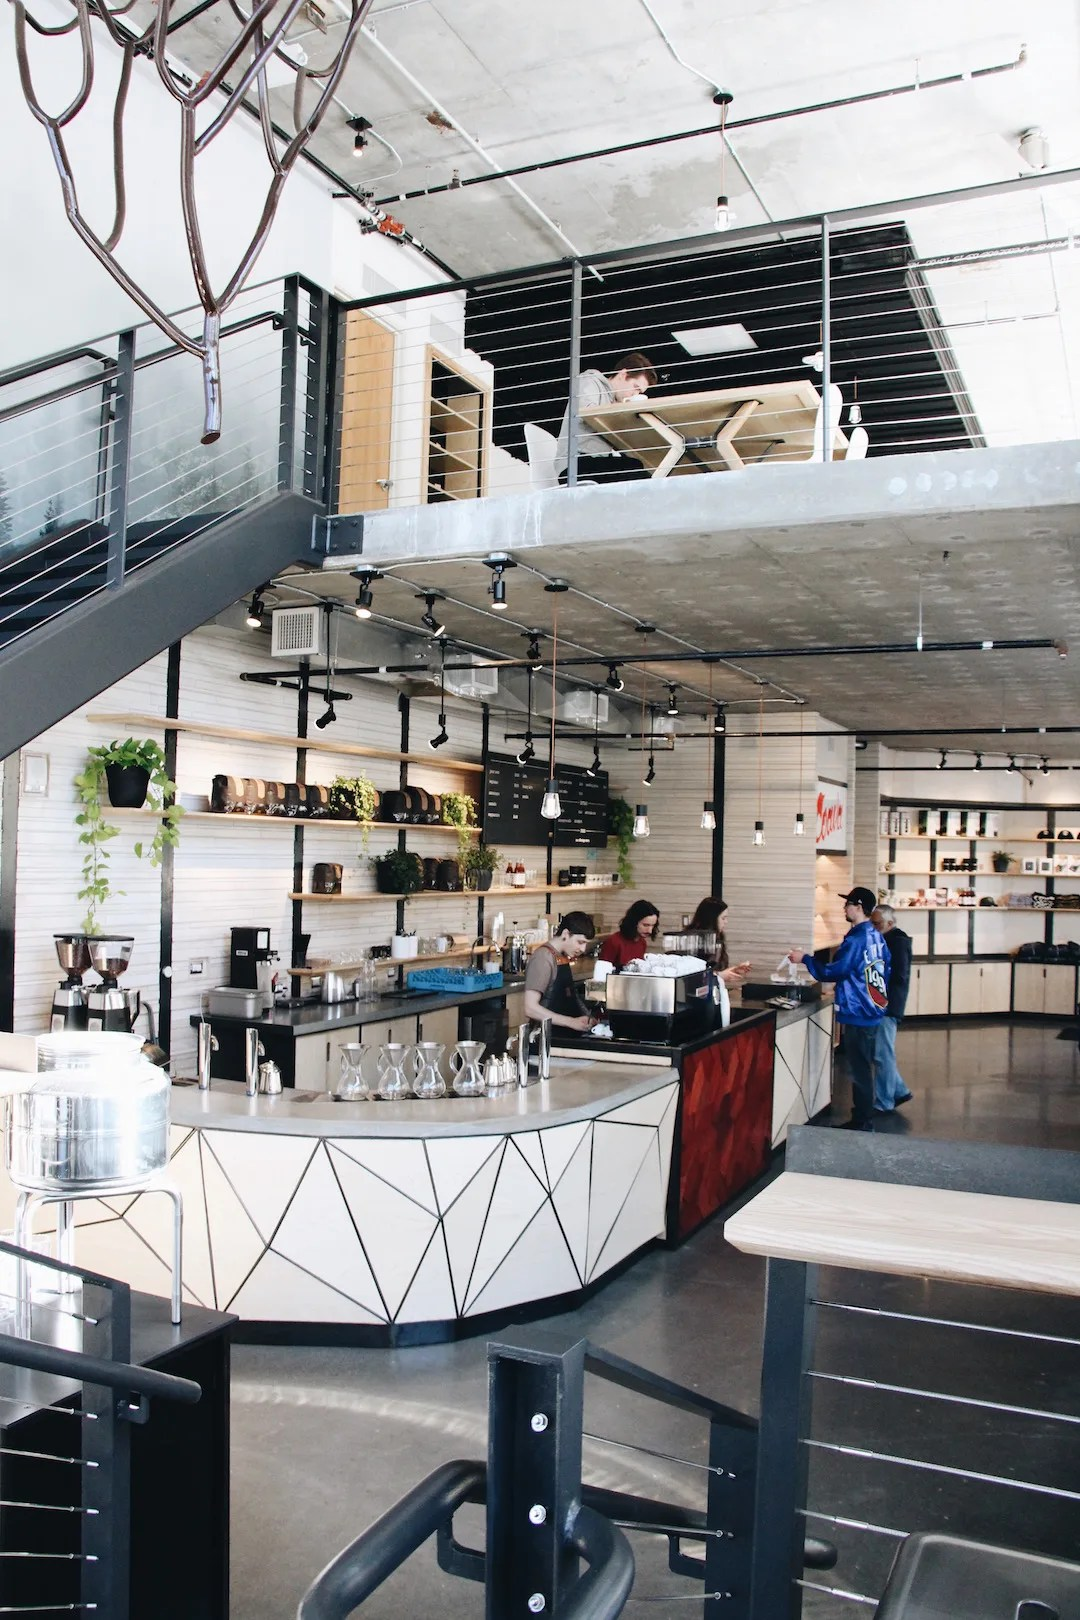 Tapijten Top Interieur Top 5 Interieur Shops Simple Top Most Beautiful Cafs In The World